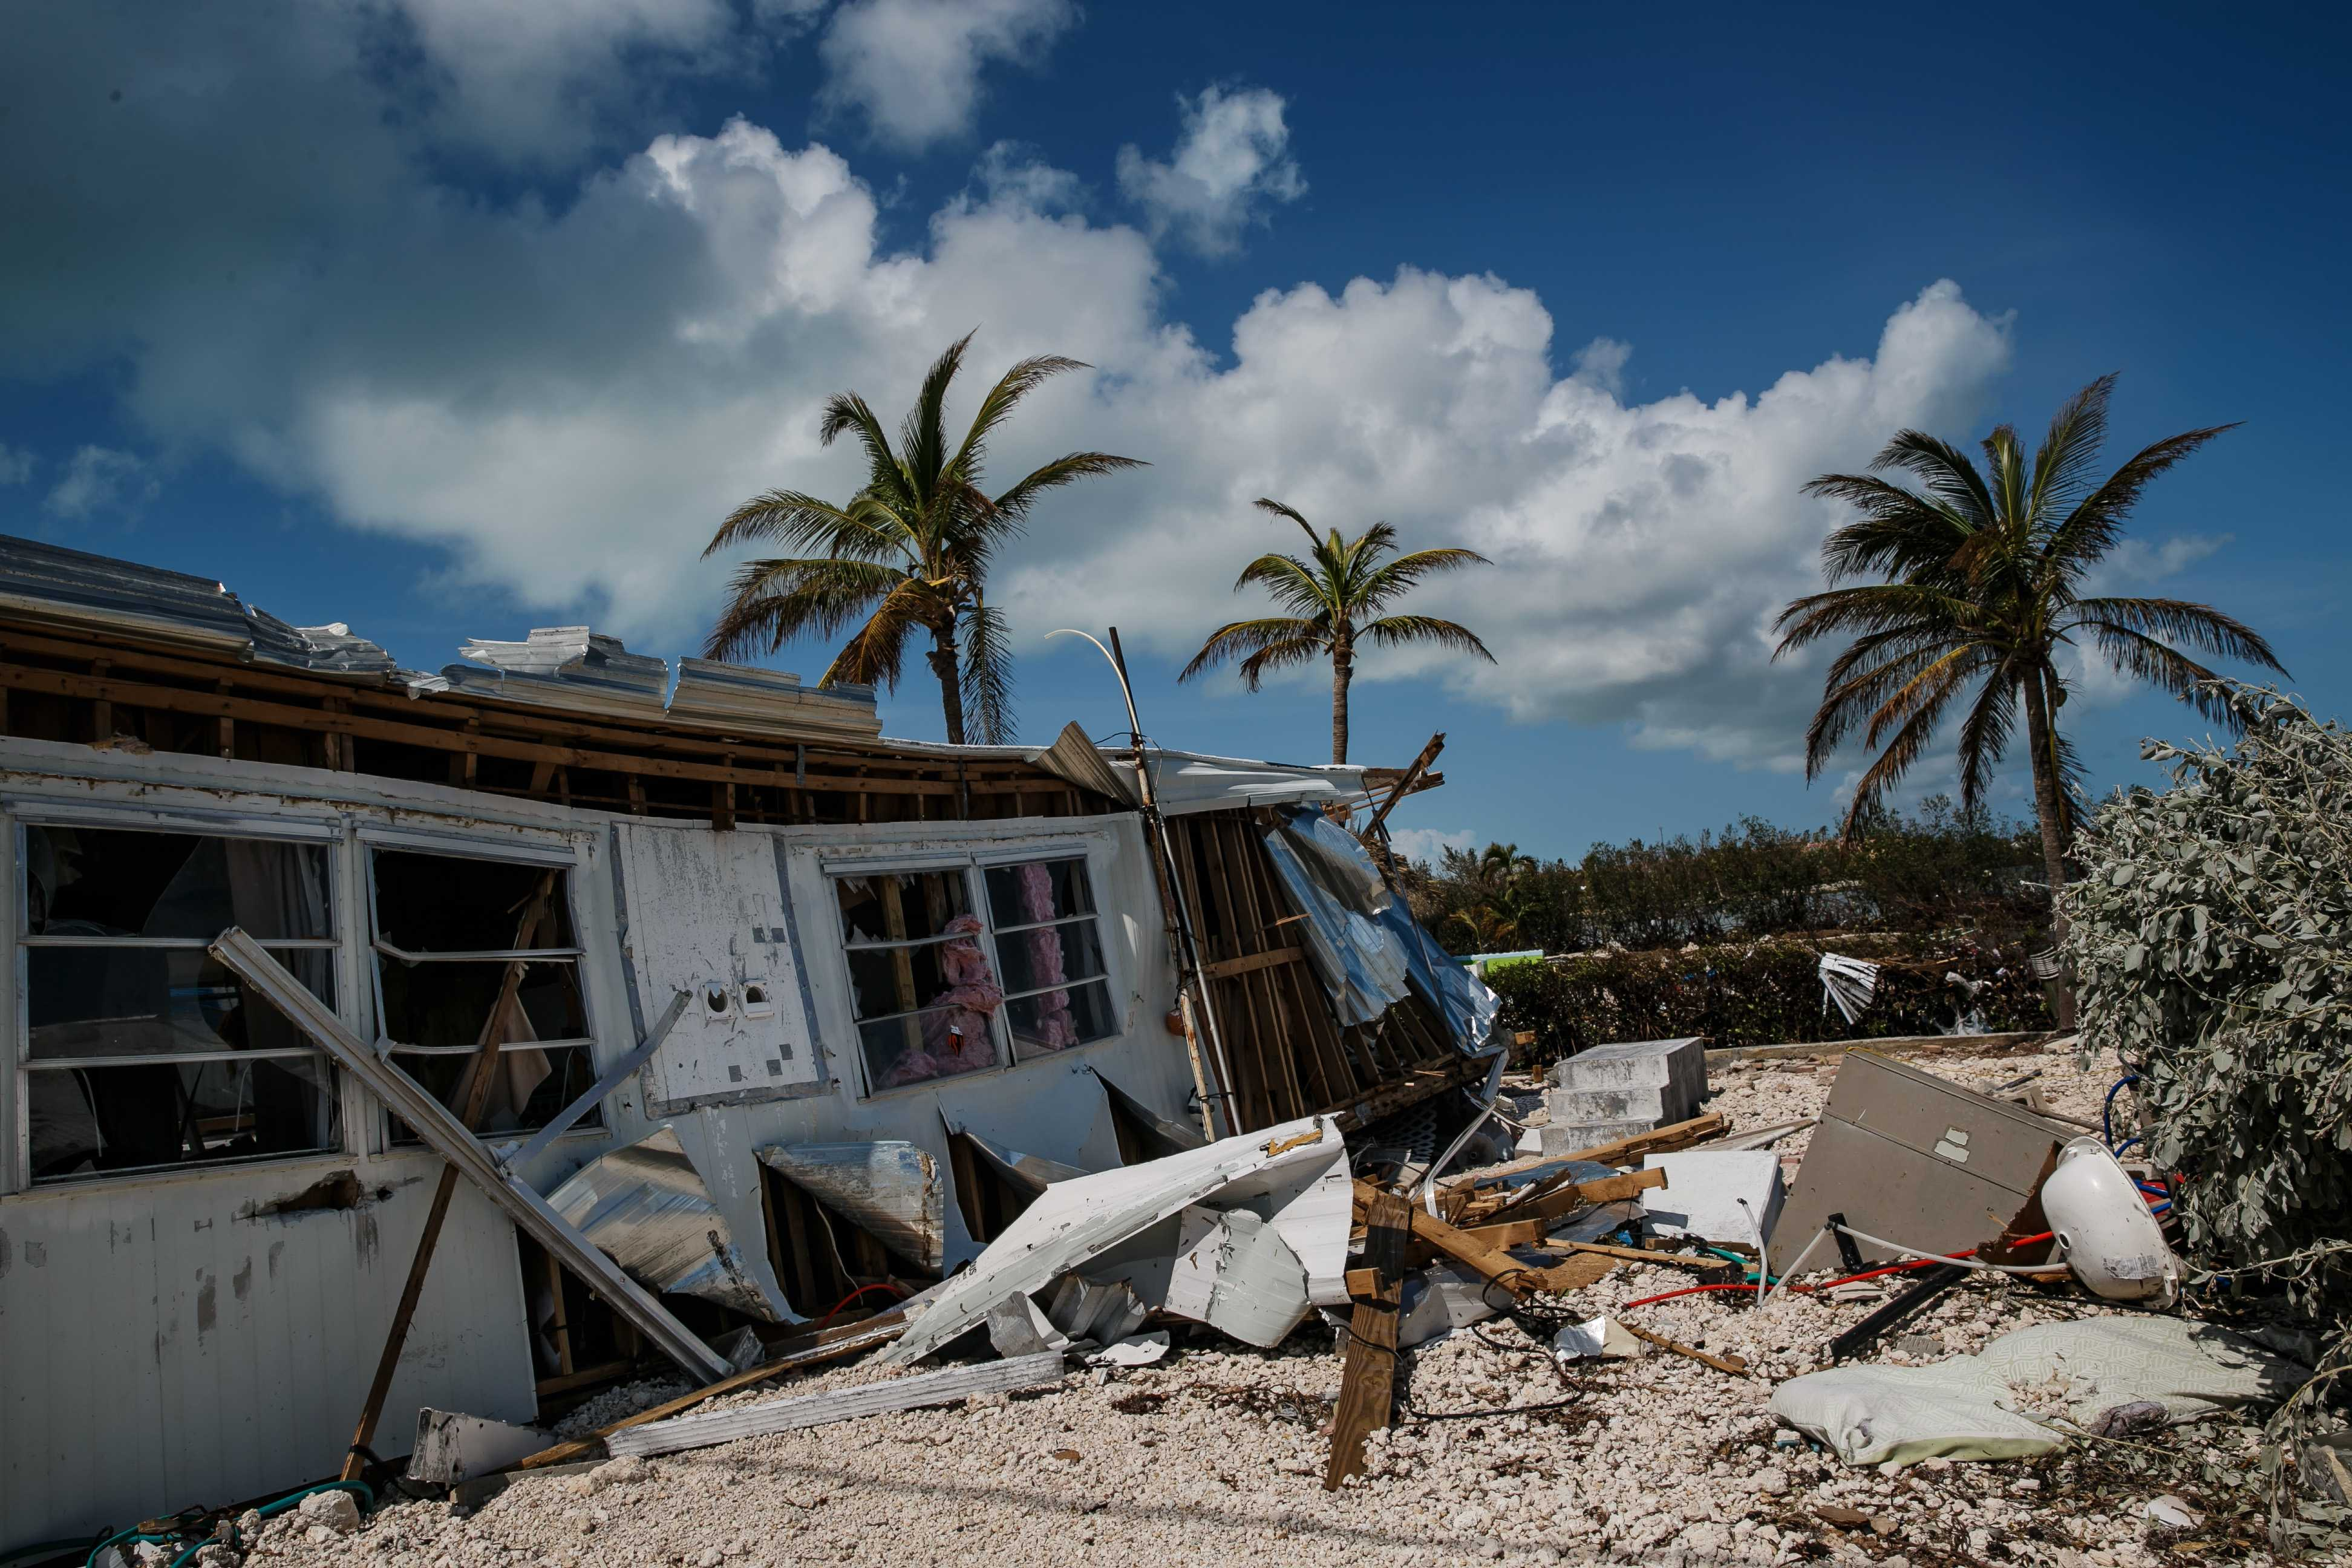 Trailer homes at the Sea Breeze trailer park are destroyed in the wake of Hurricane Irma, in Islamorada, Fla., on Tuesday, Sept. 12, 2017. (Marcus Yam/Los Angeles Times/TNS)